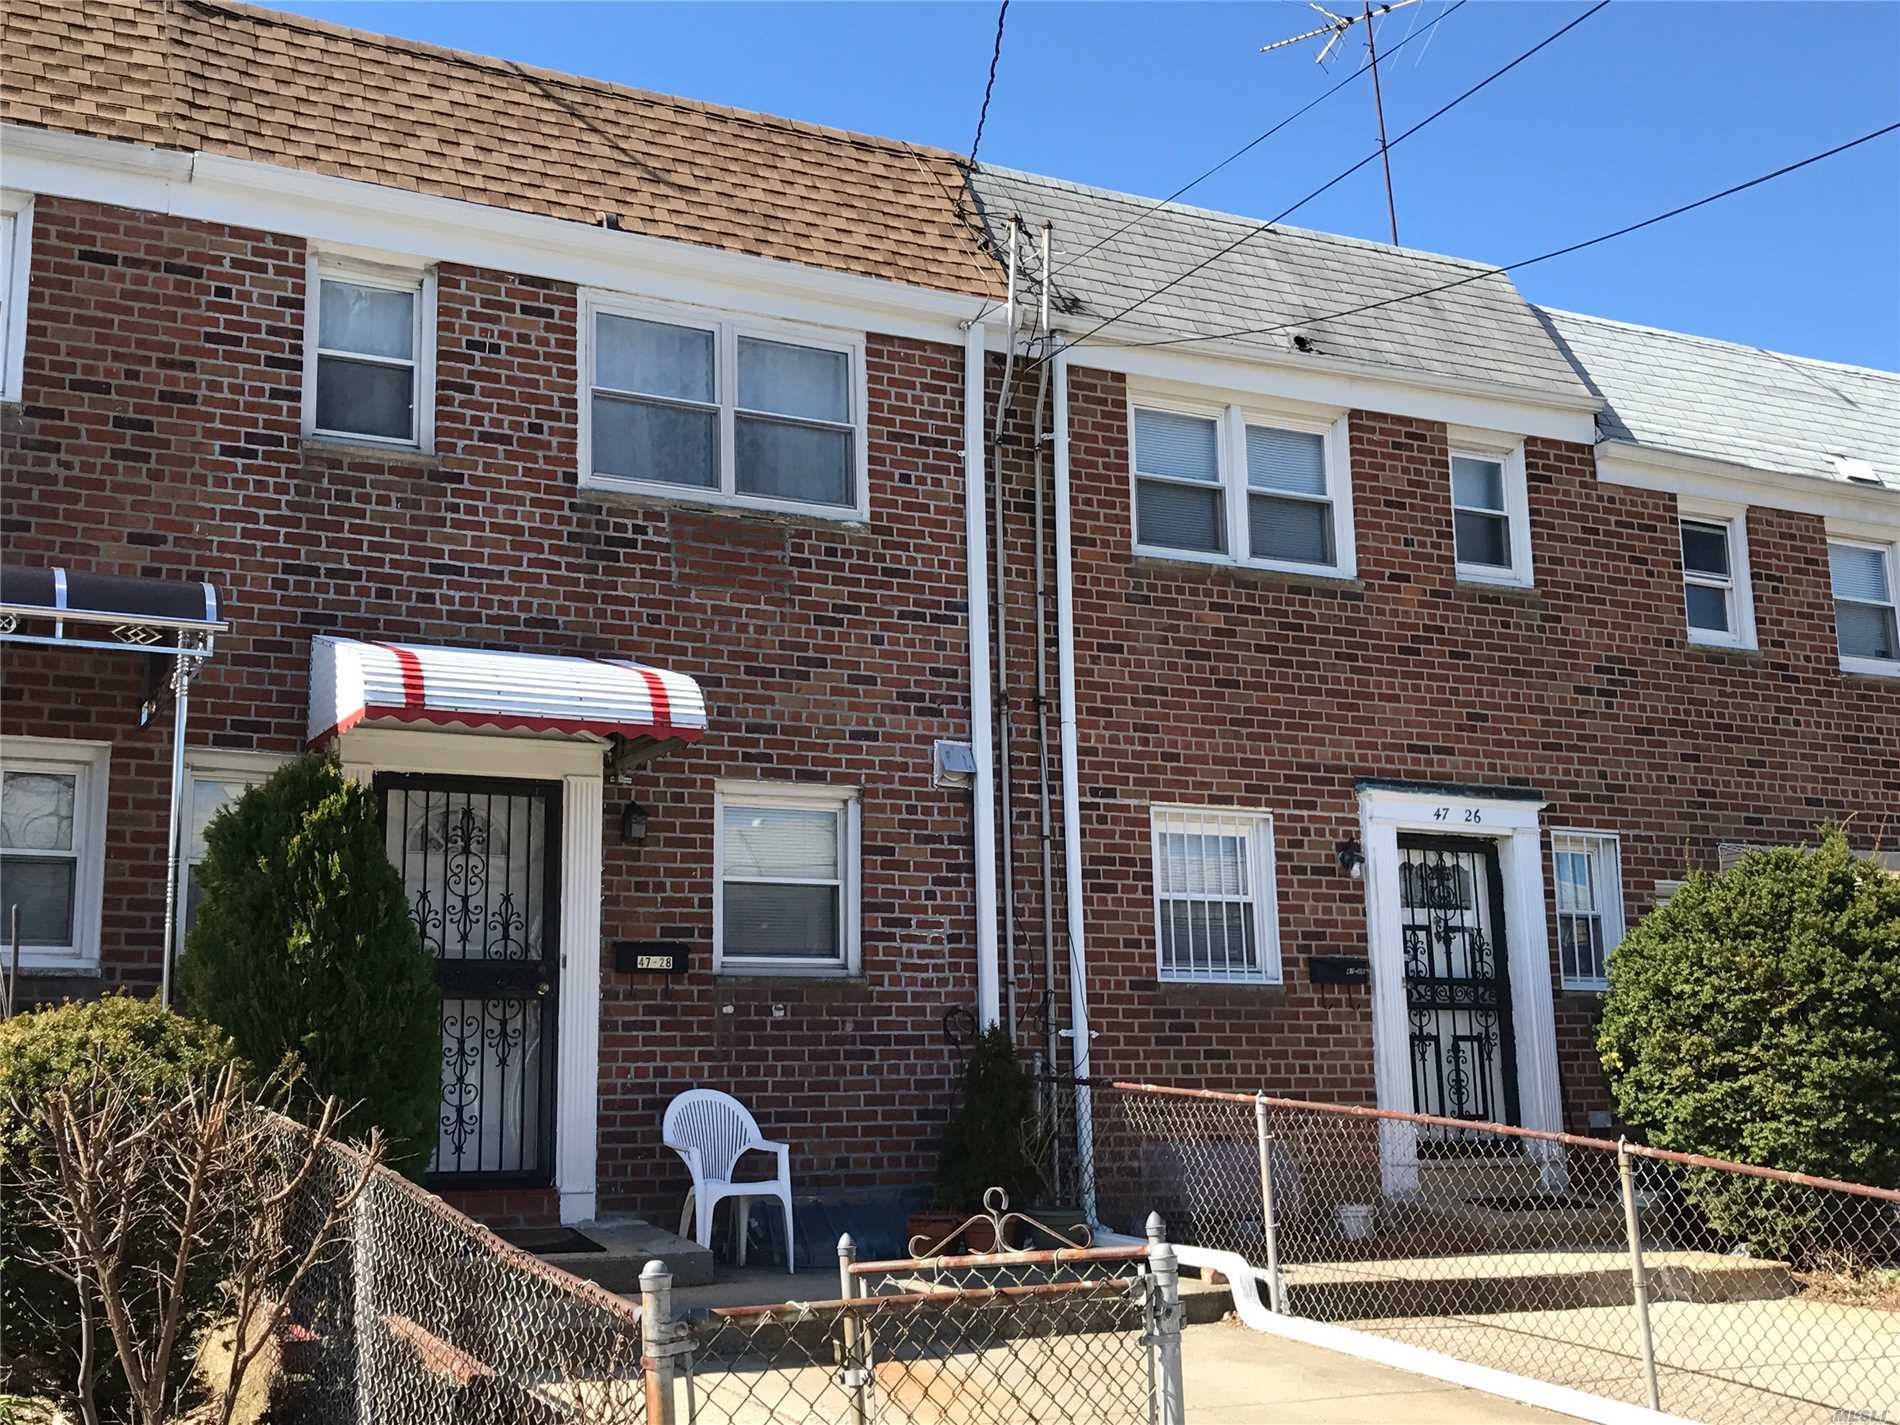 Heart Of Great Bayside. Best School District Of No.26,  Half Block To Schools & Q27 Bus On 48 Ave. Near Park, Lake, Q12 On Northern Blvd. Lirr. Within 10 Minutes To Nyc. 8 Minutes Driving To Bay T. Mall On 26 Ave & Bell Blvd. A Lovely House. Very Well Maintained & Excellent Condition. Seeing Is Believing.